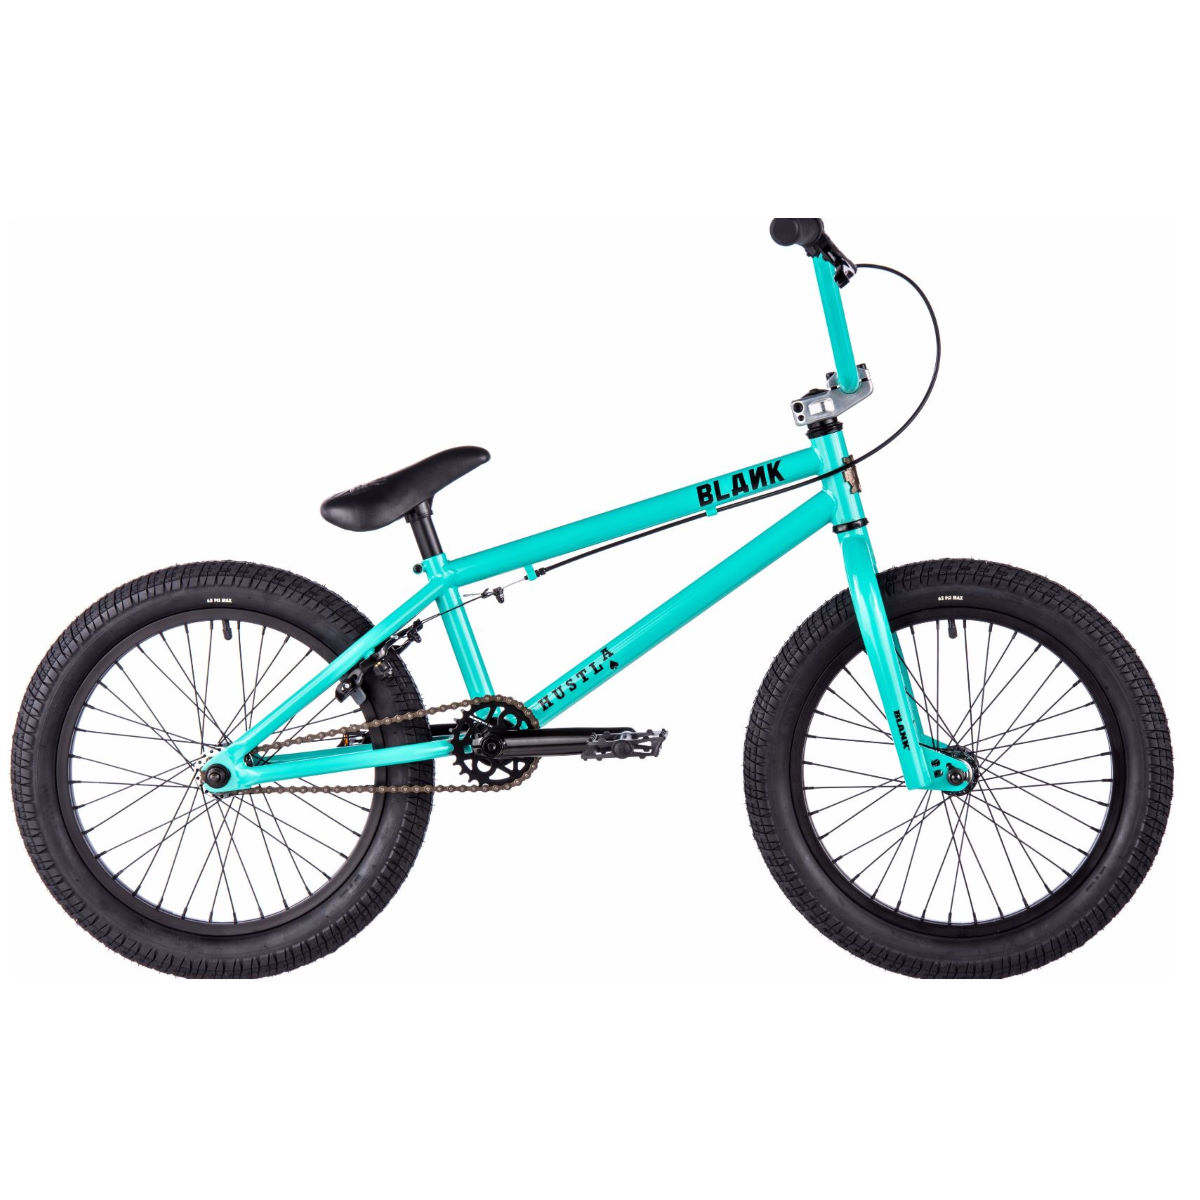 BMX Blank Hustla 18 pouces (2017) - One Size Stock Bike Gloss Teal